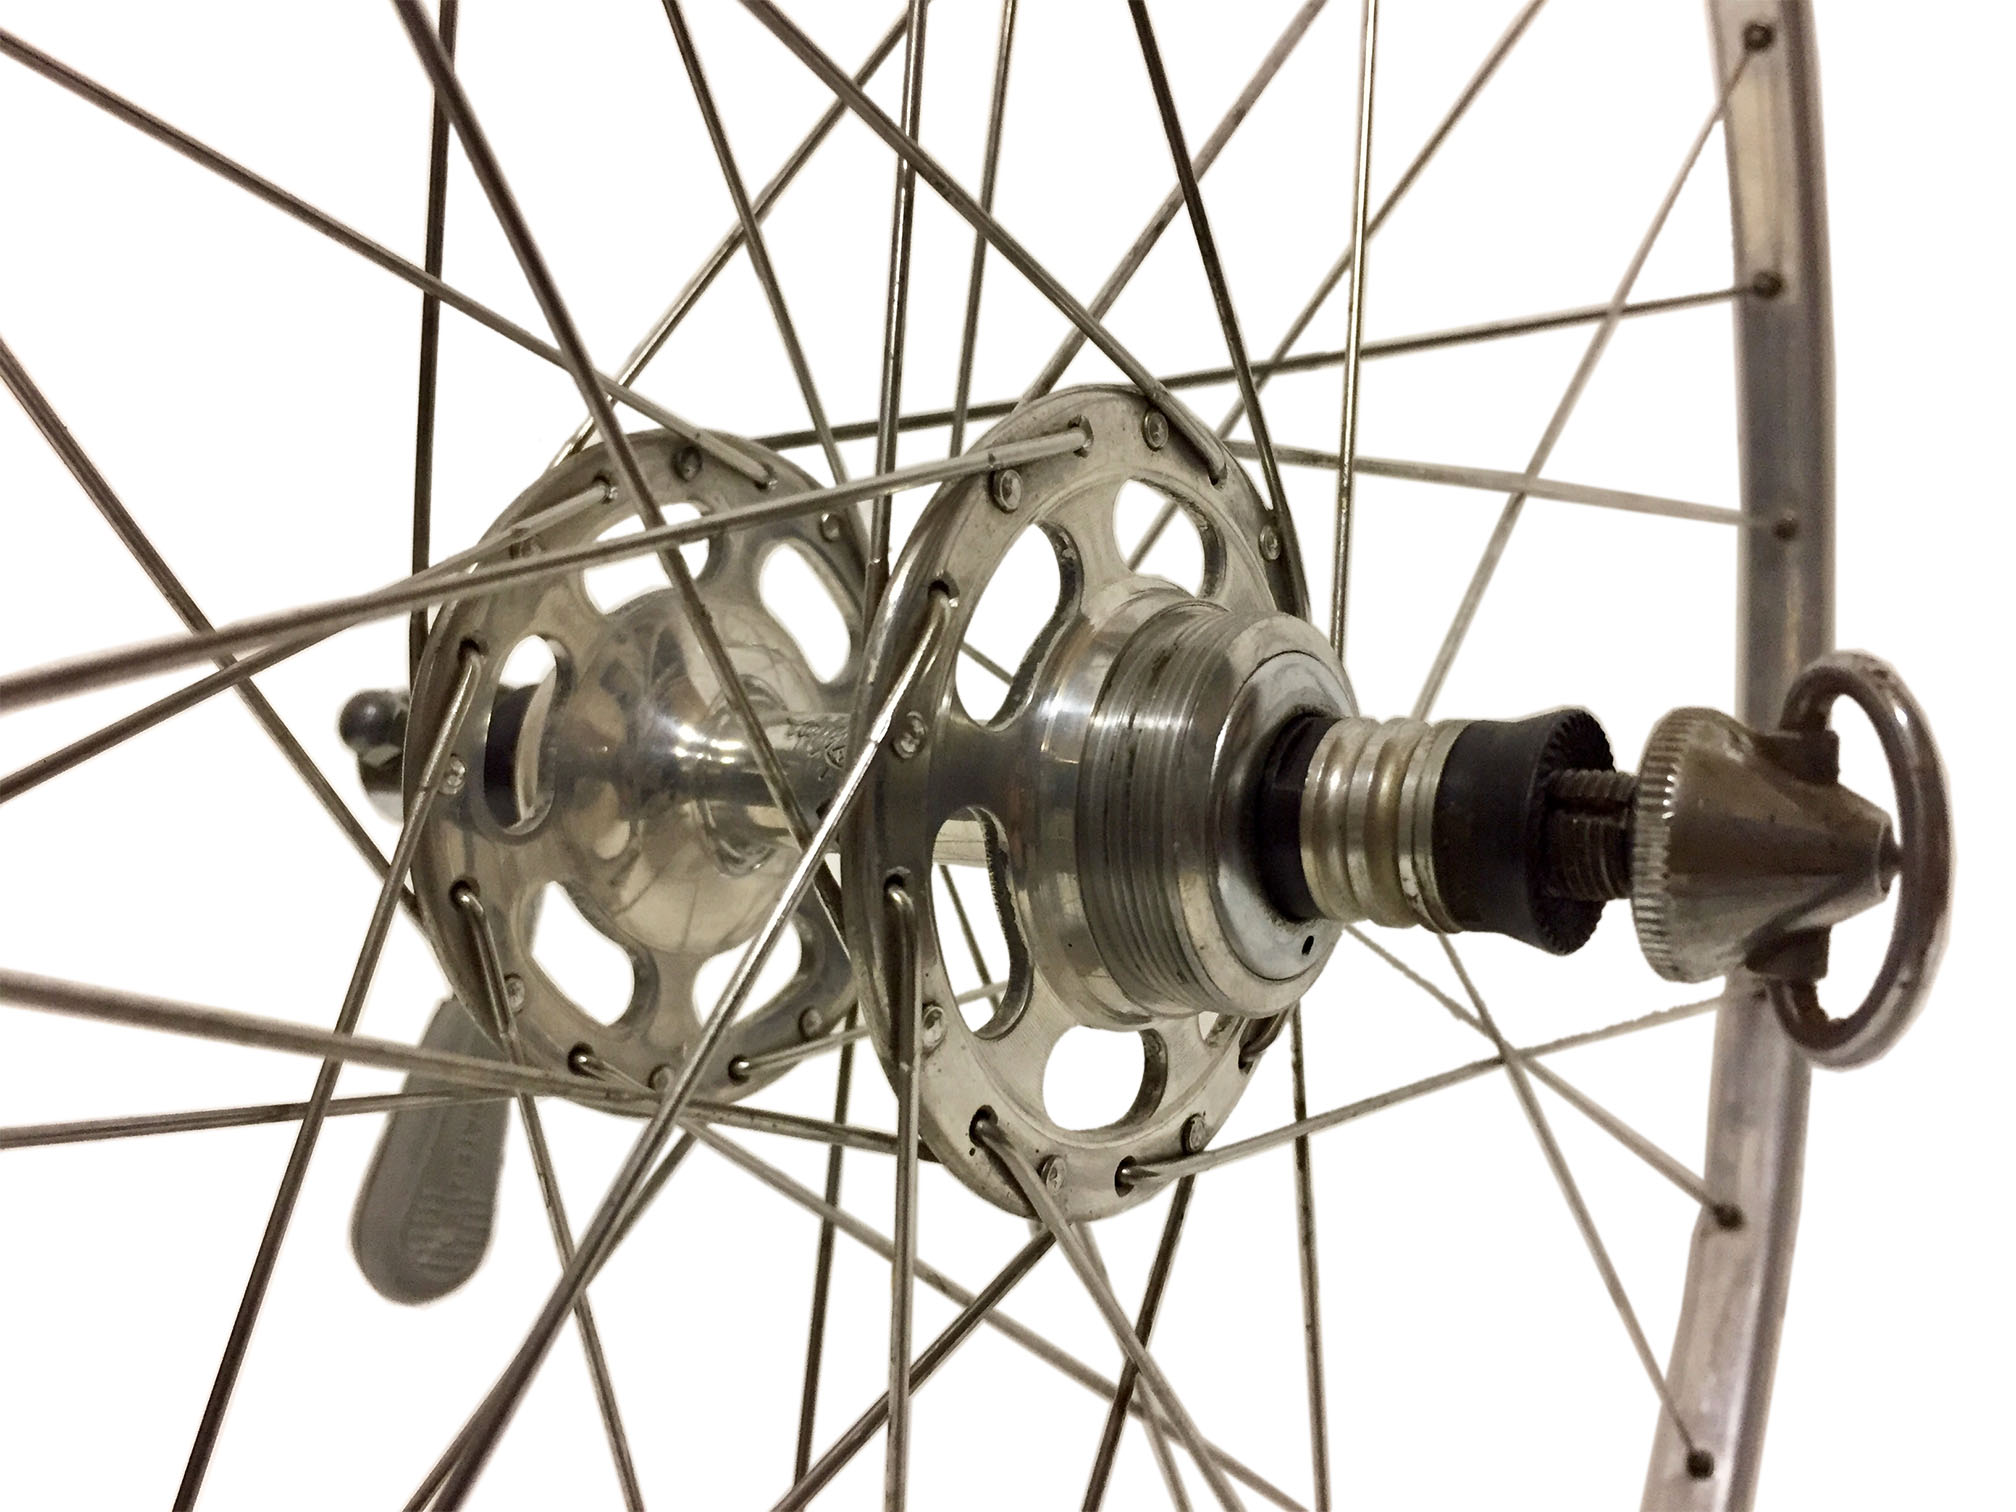 Vintage Wheelset Fiamme Campagnolo Record 1st Generation